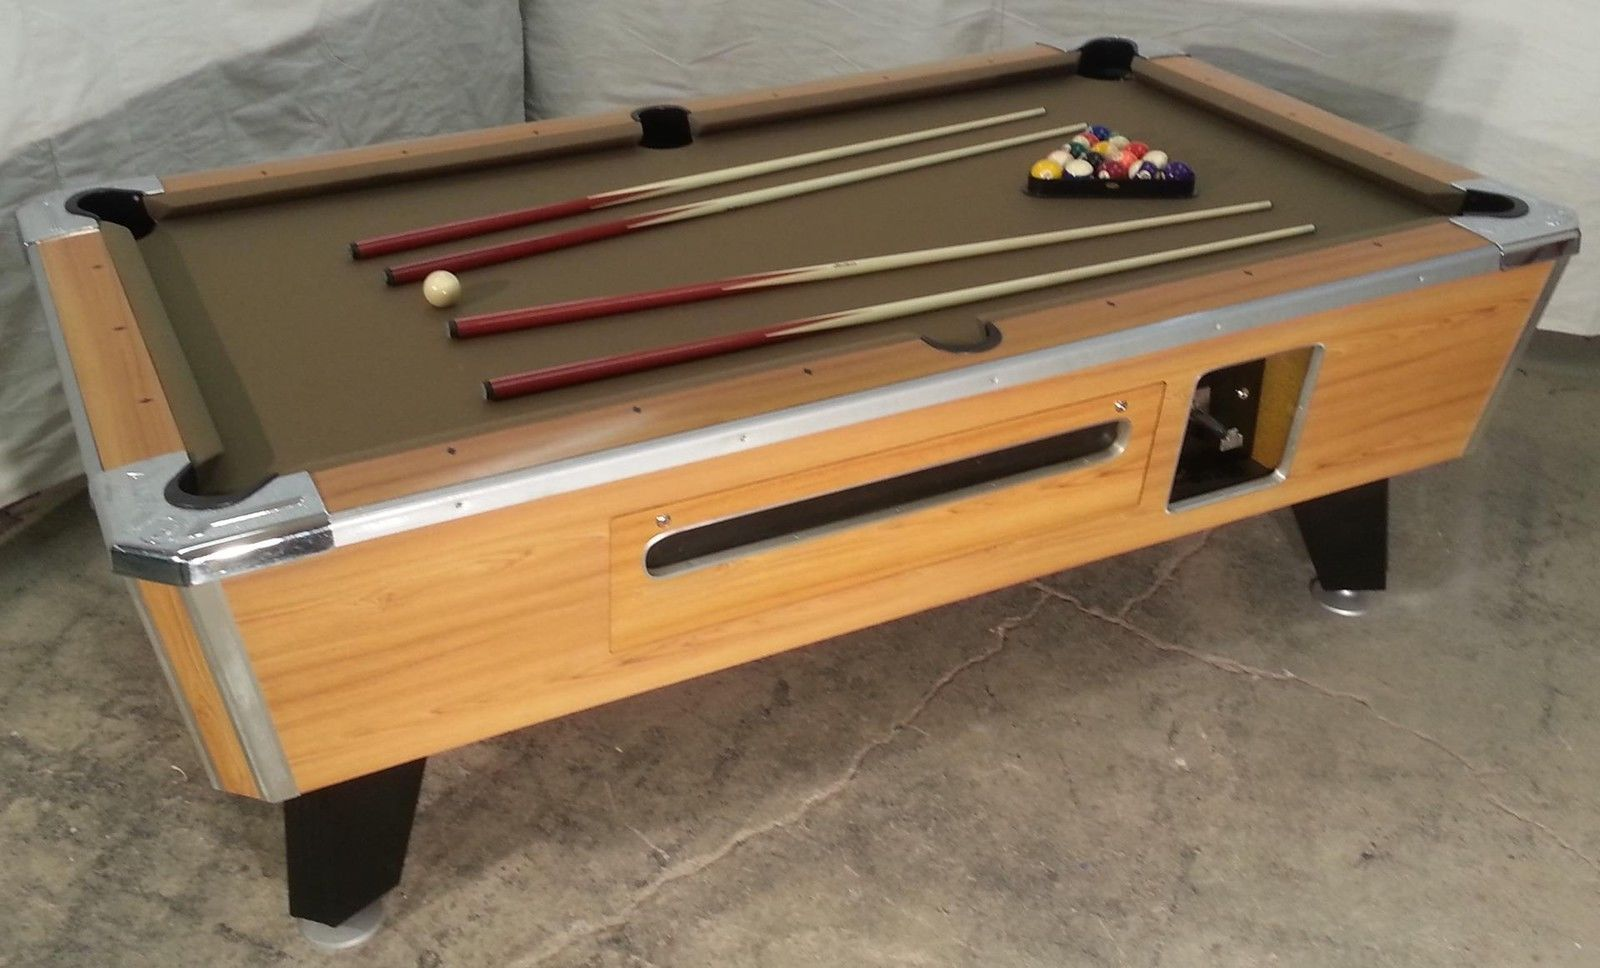 Valley cougar zd 7 coin op 7 bar size pool table totally valley cougar zd 7 coin op 7 bar size pool table totally refurbished in taupe watchthetrailerfo